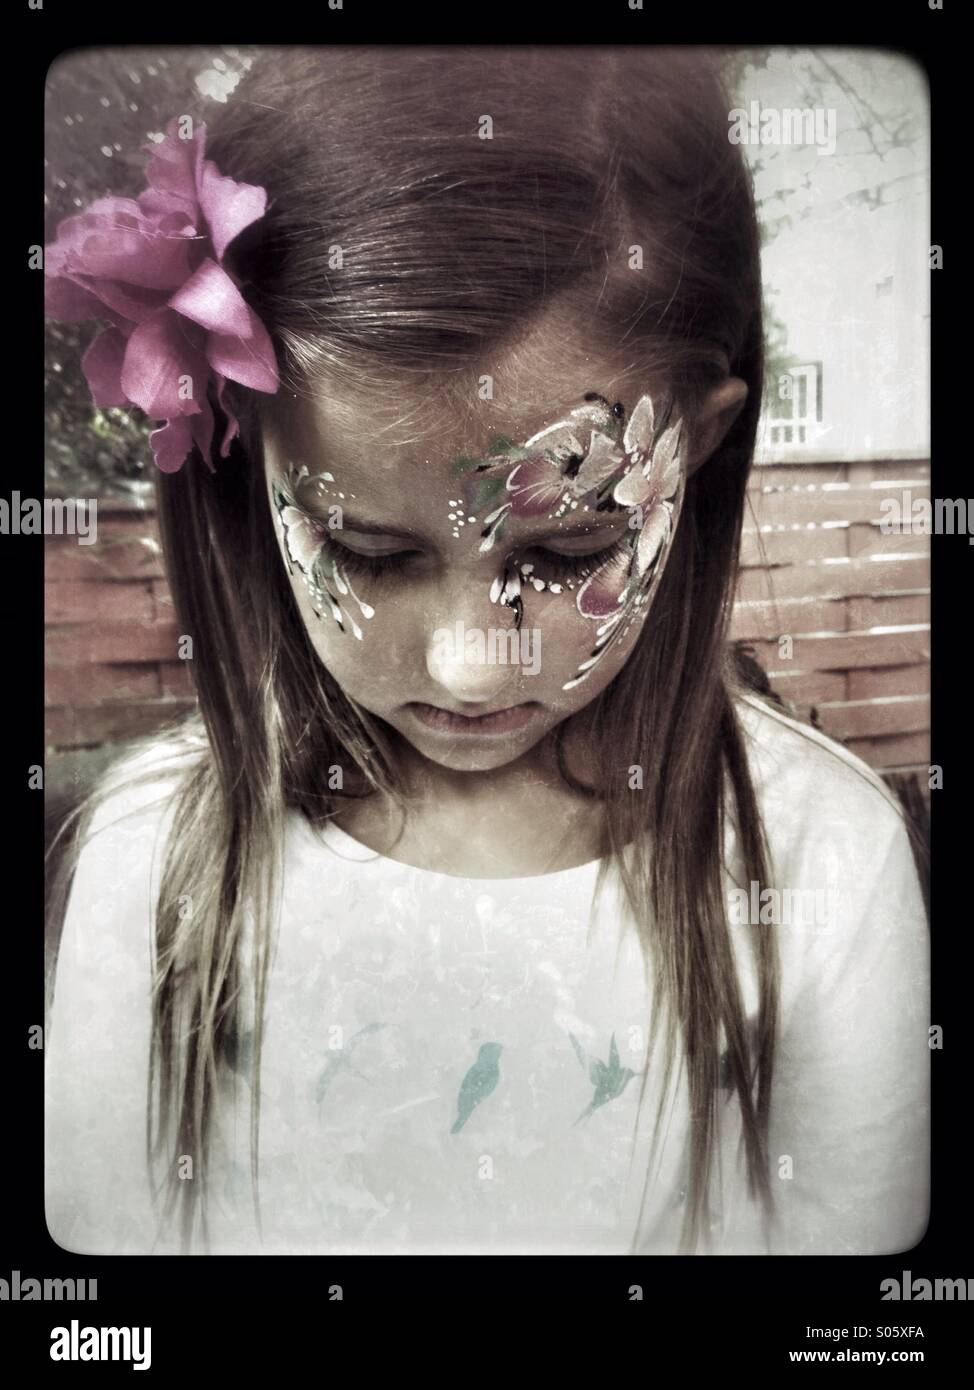 Sad girl with painted face. - Stock Image